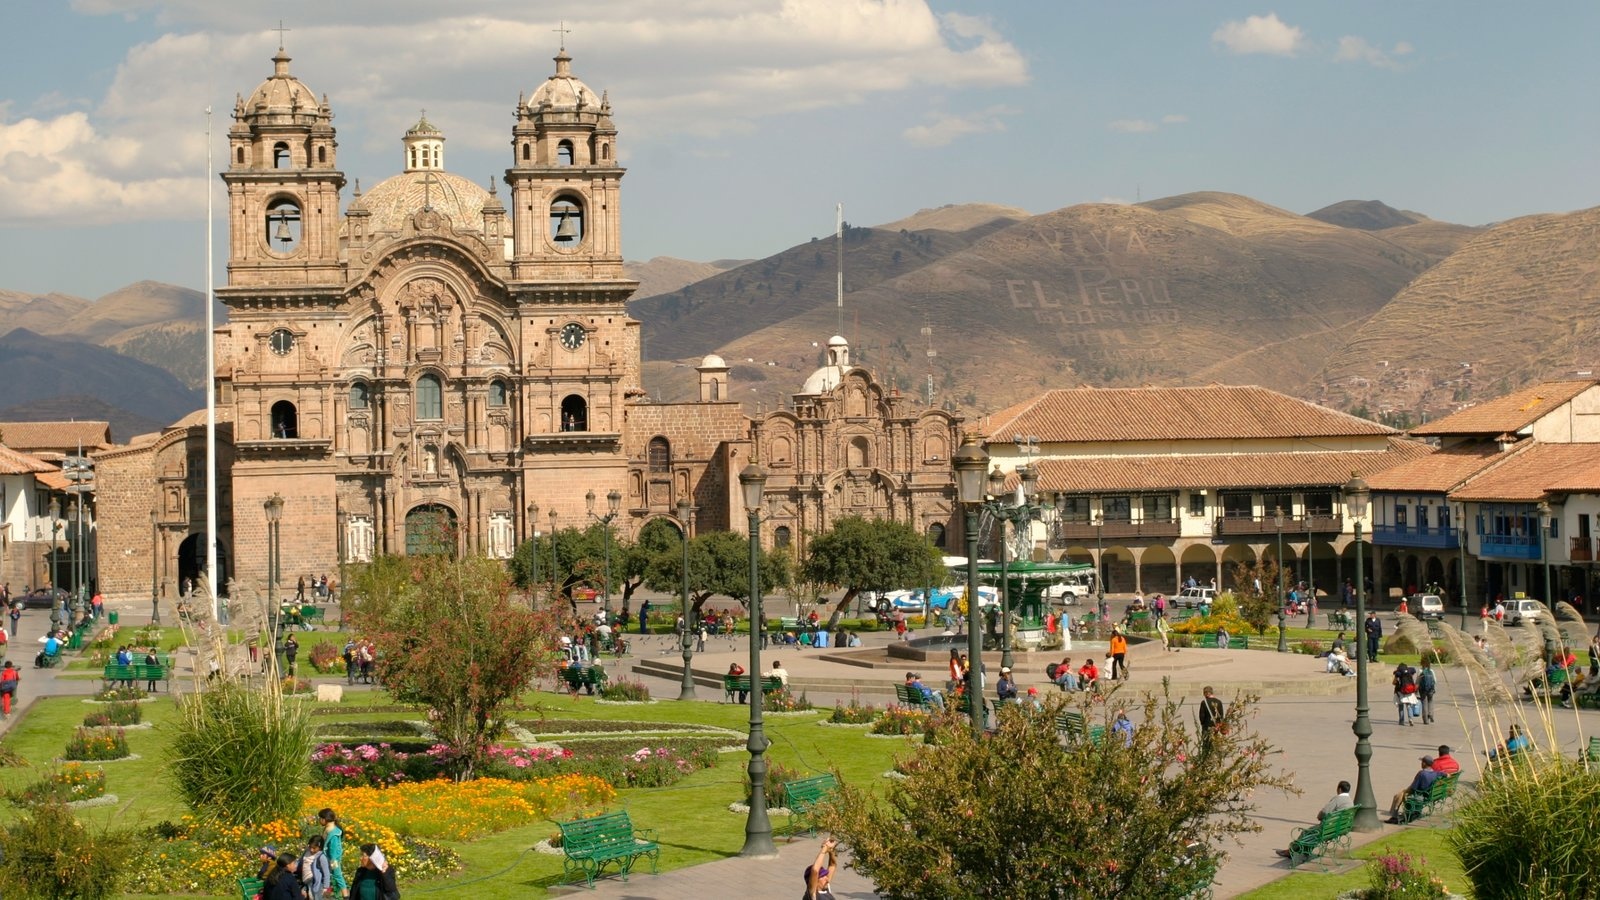 Peruvian Highlands which includes a square or plaza, a city and a church or cathedral